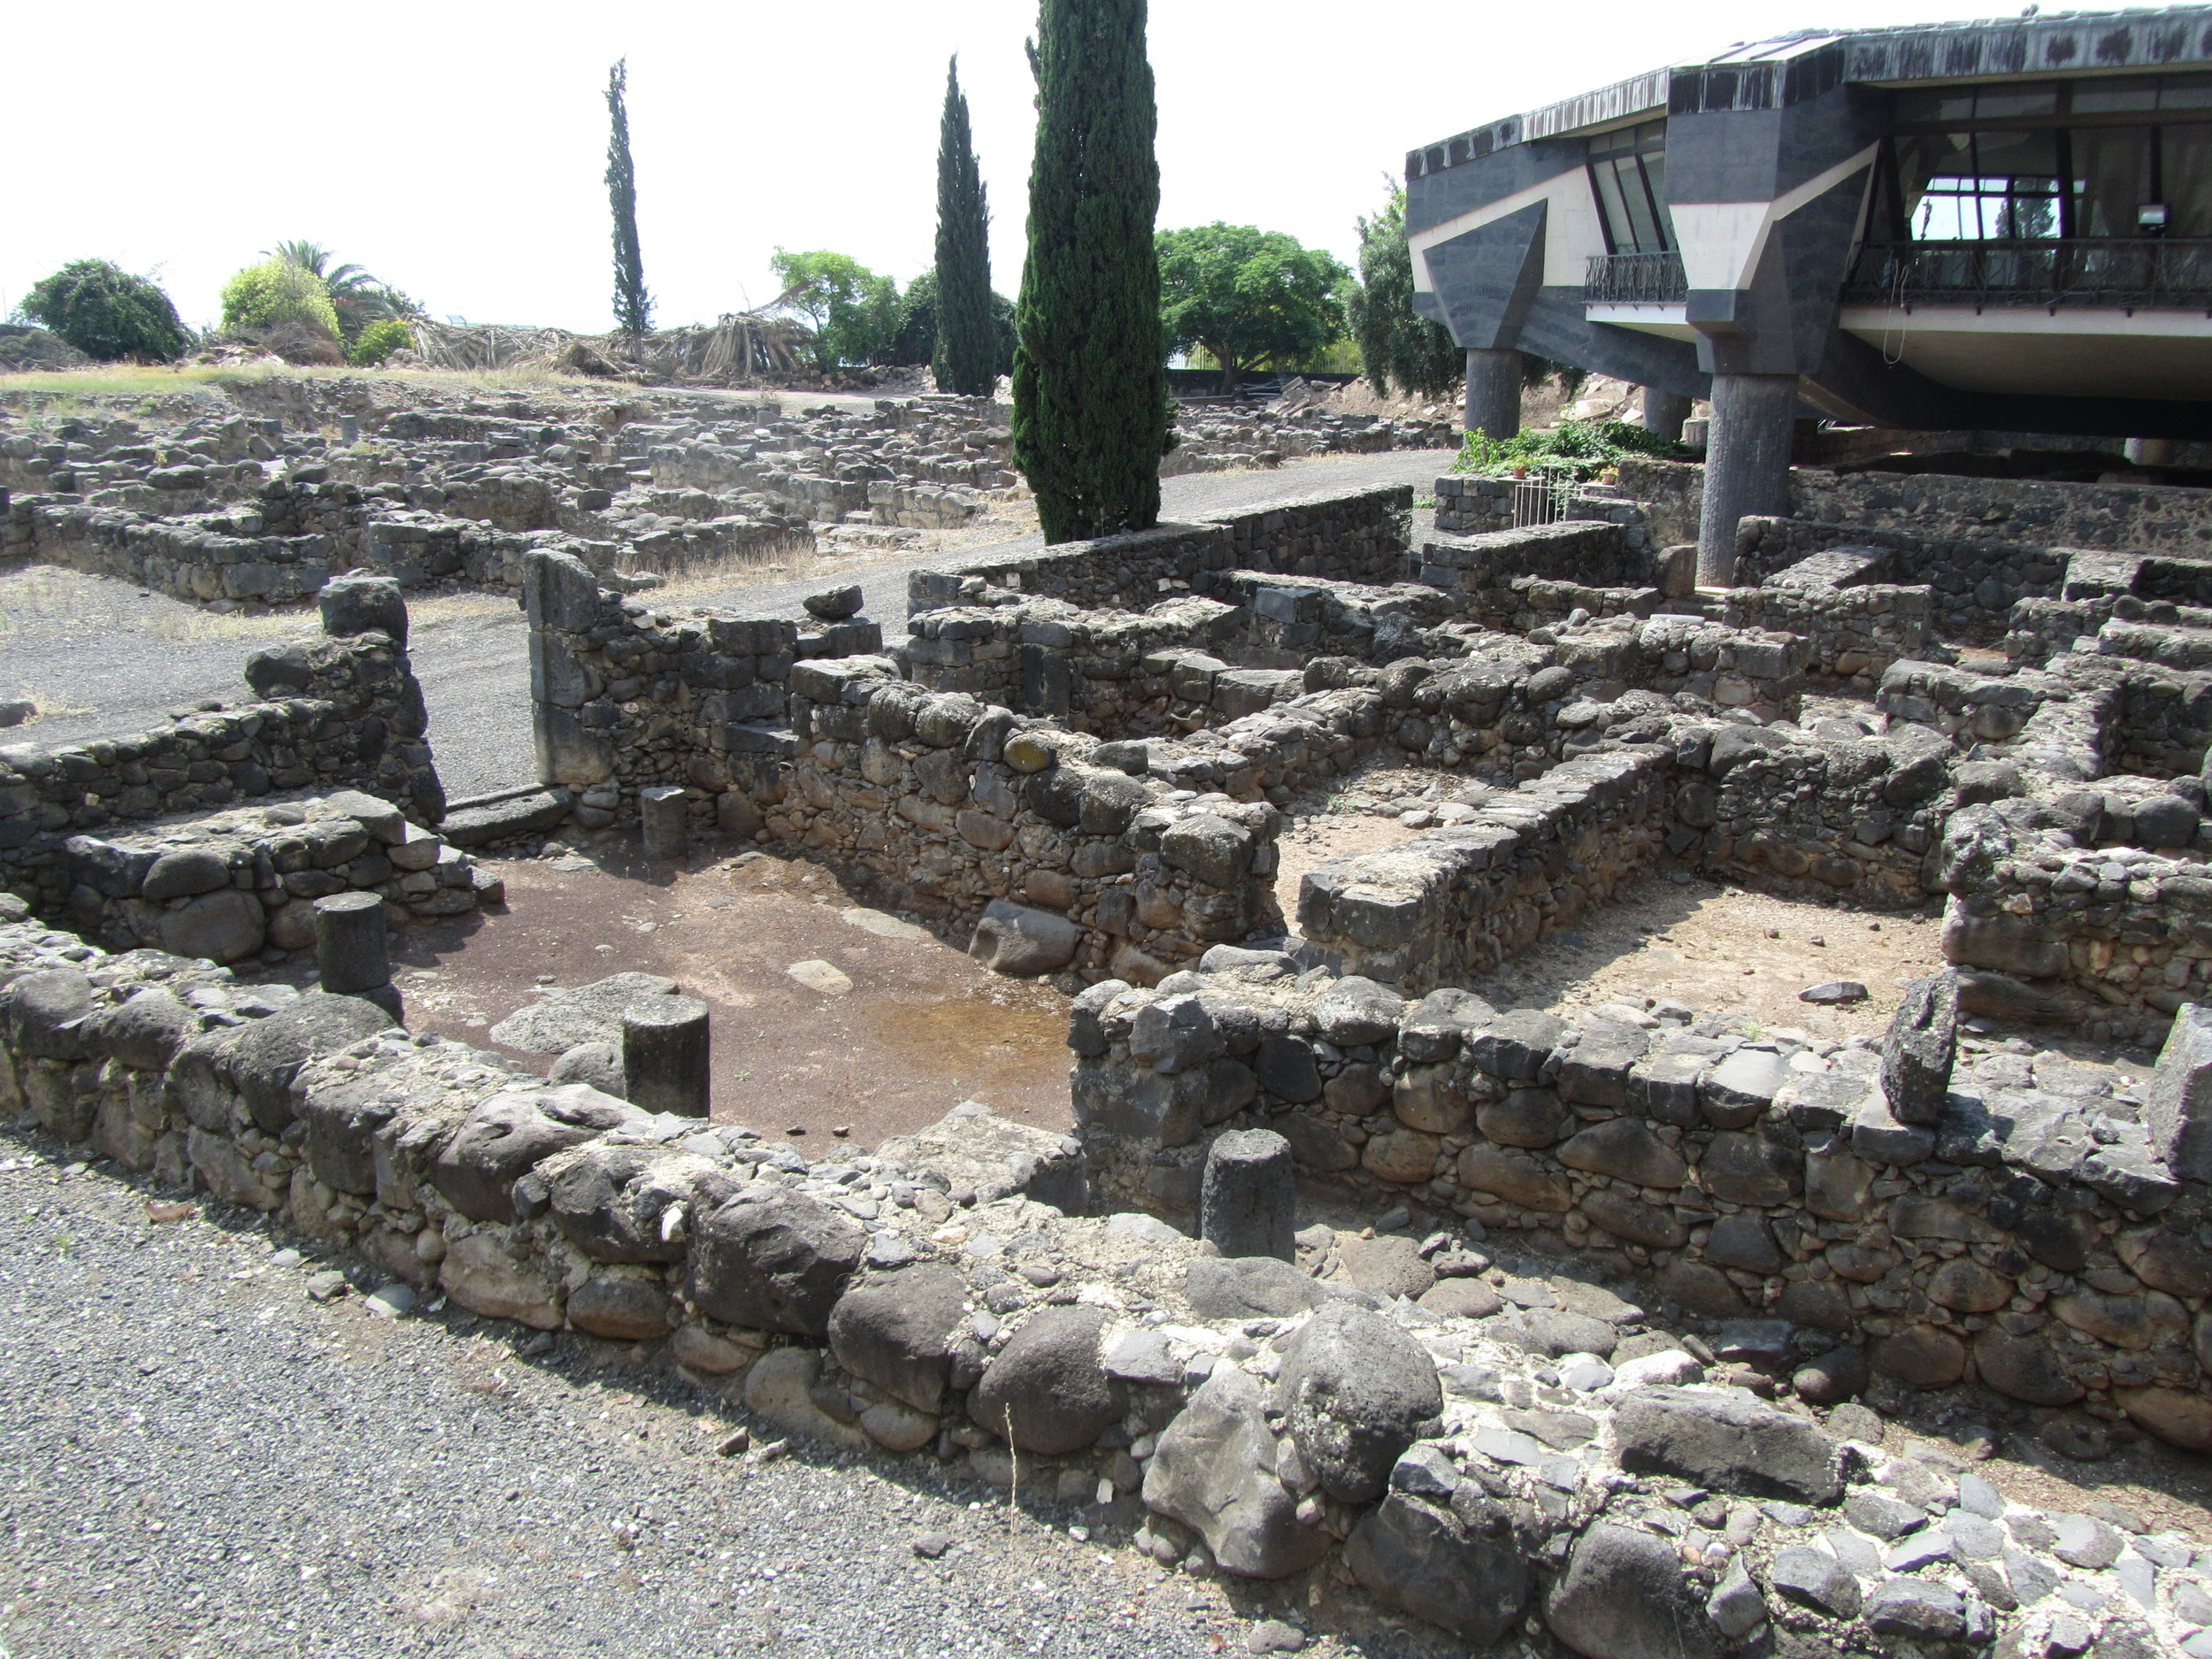 The blocks of extended family homes in Capernaum